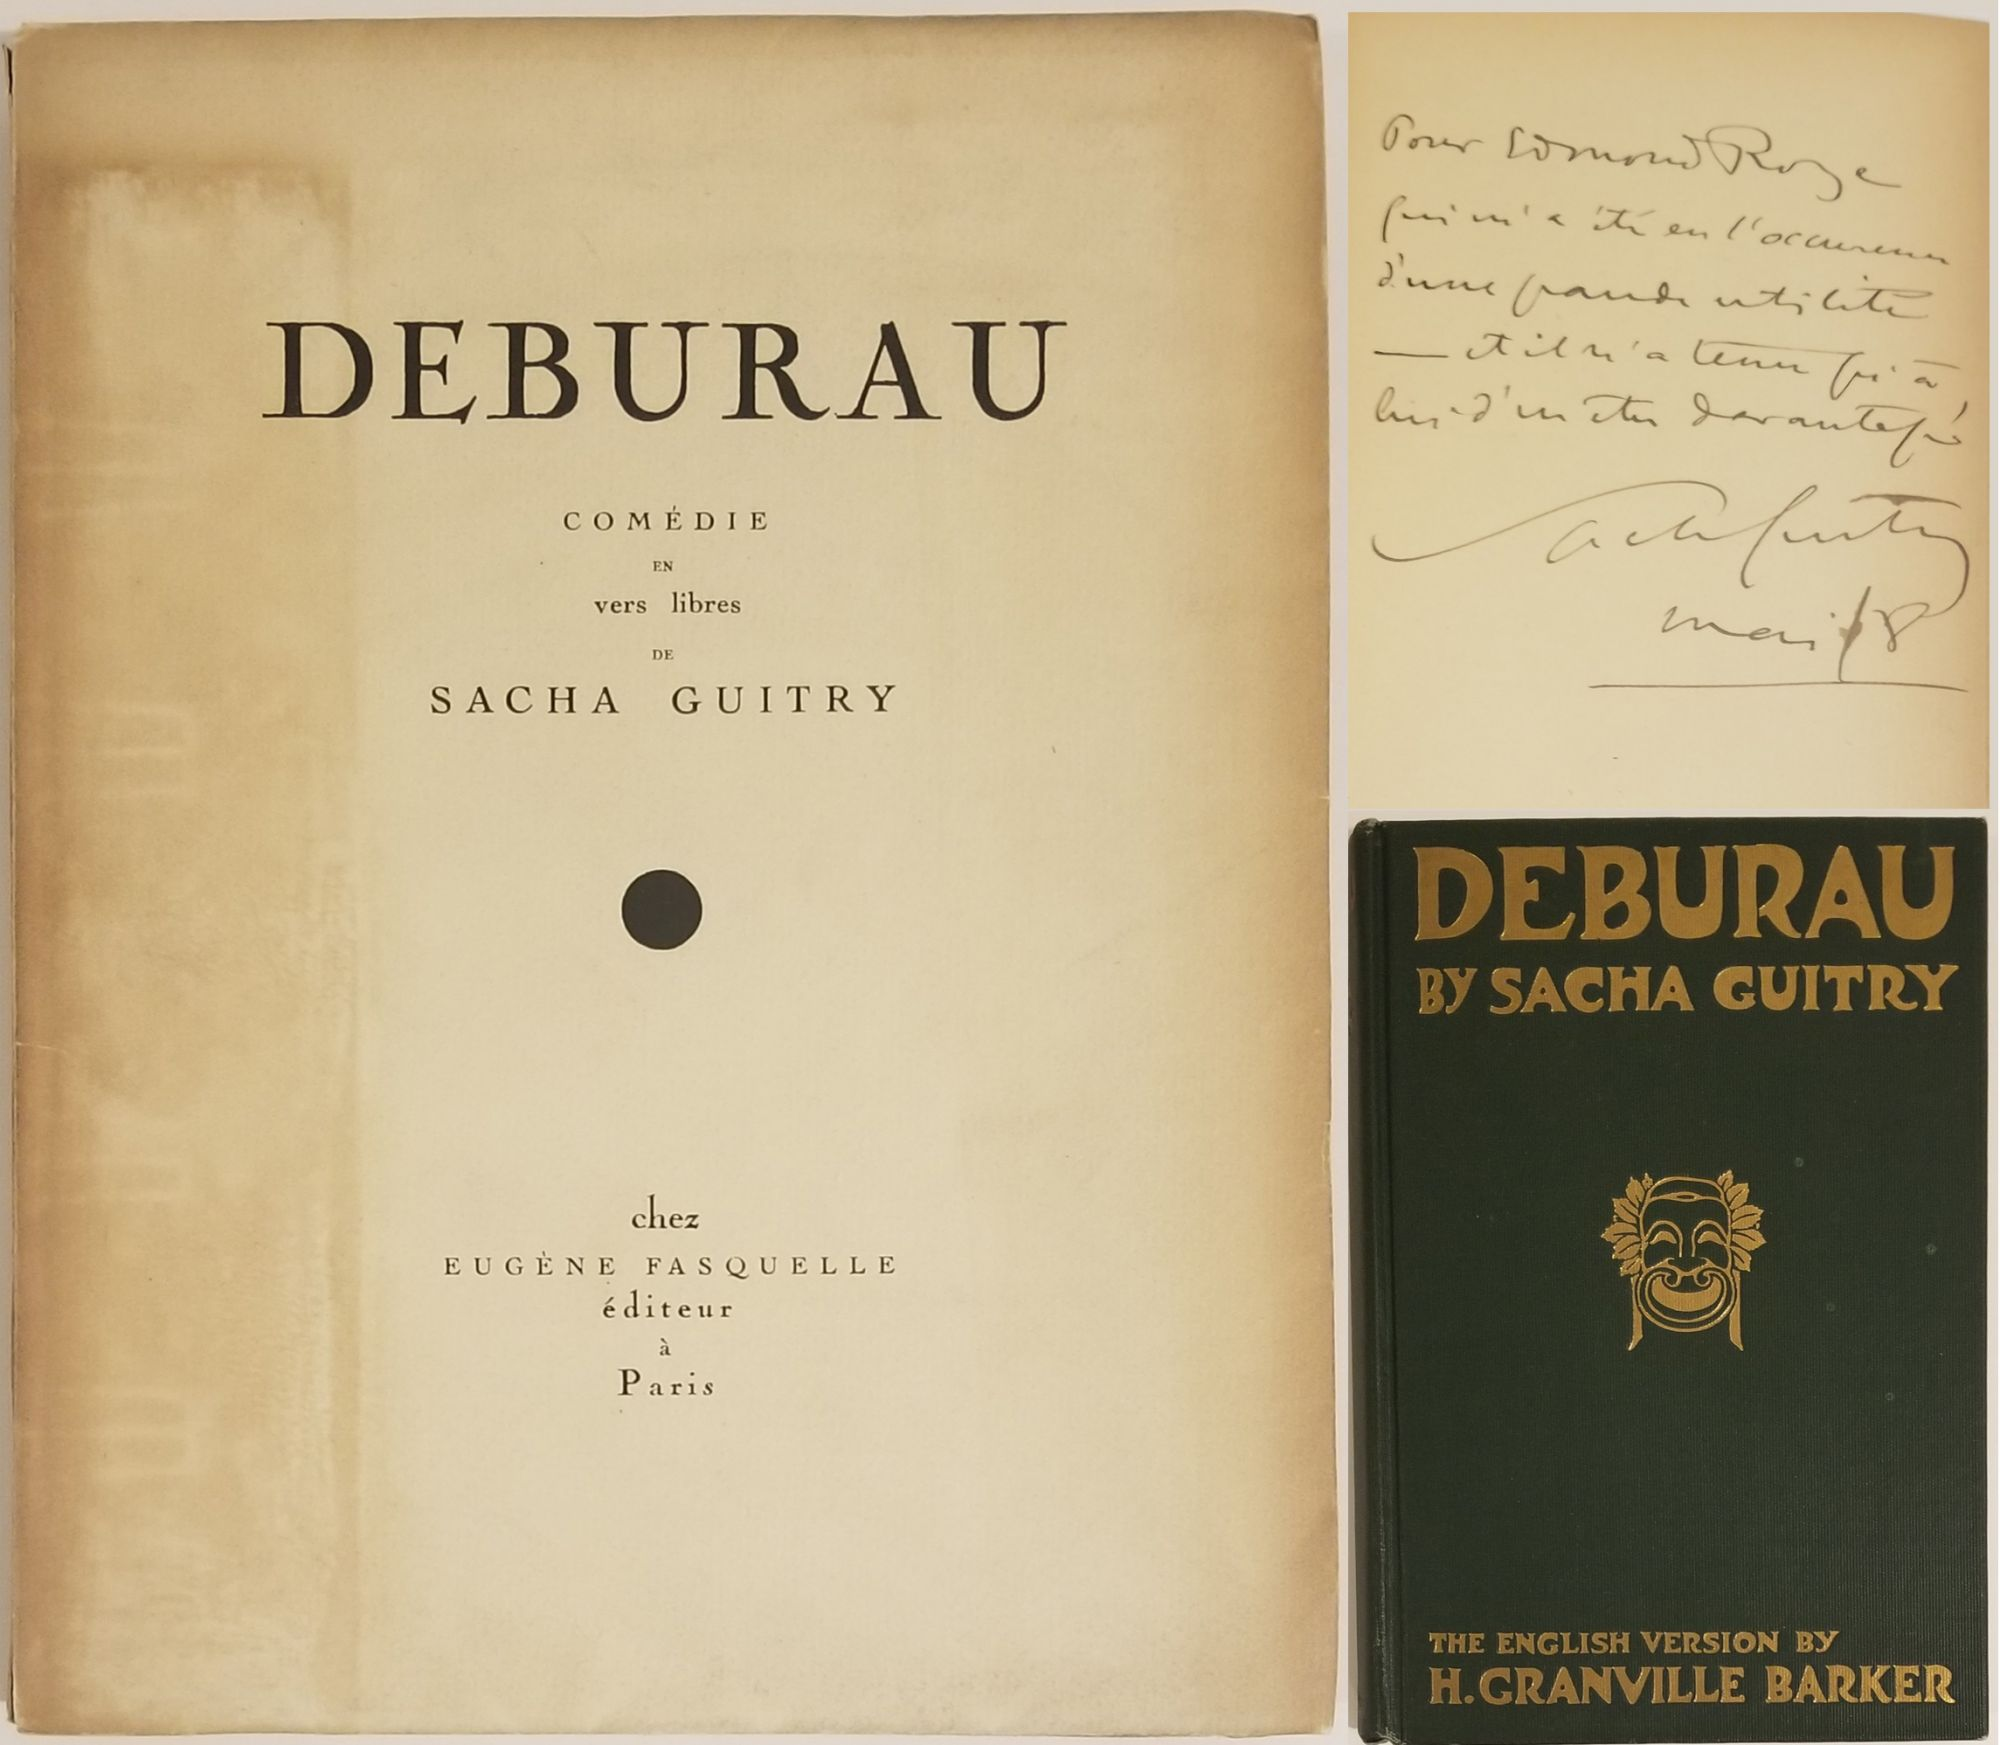 DEBURAU (INSCRIBED ASSOCIATION COPY of the 1918 French Trade Edition, and a copy the 1921 English Translation Edition). Sacha Guitry.